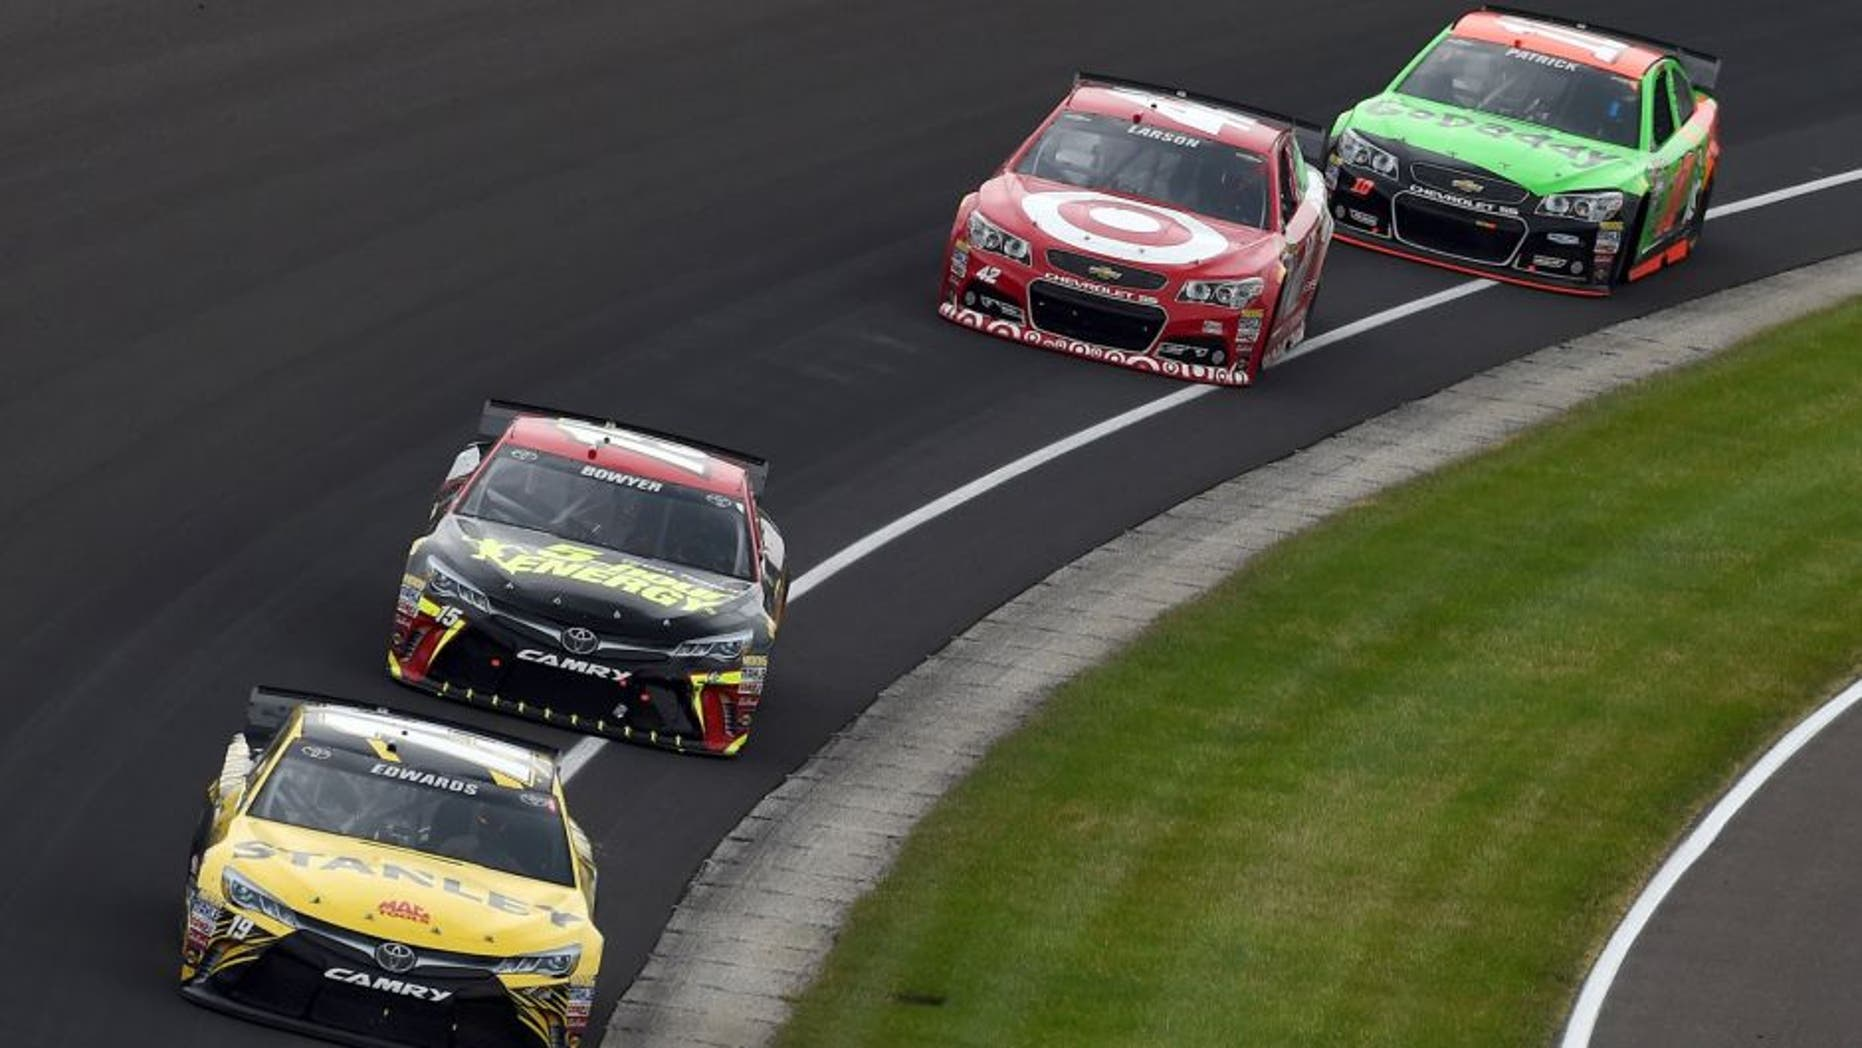 INDIANAPOLIS, IN - JULY 26: Carl Edwards, driver of the #19 Stanley Toyota, leads a pack of cars during the NASCAR Sprint Cup Series Crown Royal Presents the Jeff Kyle 400 at the Brickyard at Indianapolis Motor Speedway on July 26, 2015 in Indianapolis, Indiana. (Photo by Rainier Ehrhardt/NASCAR via Getty Images)